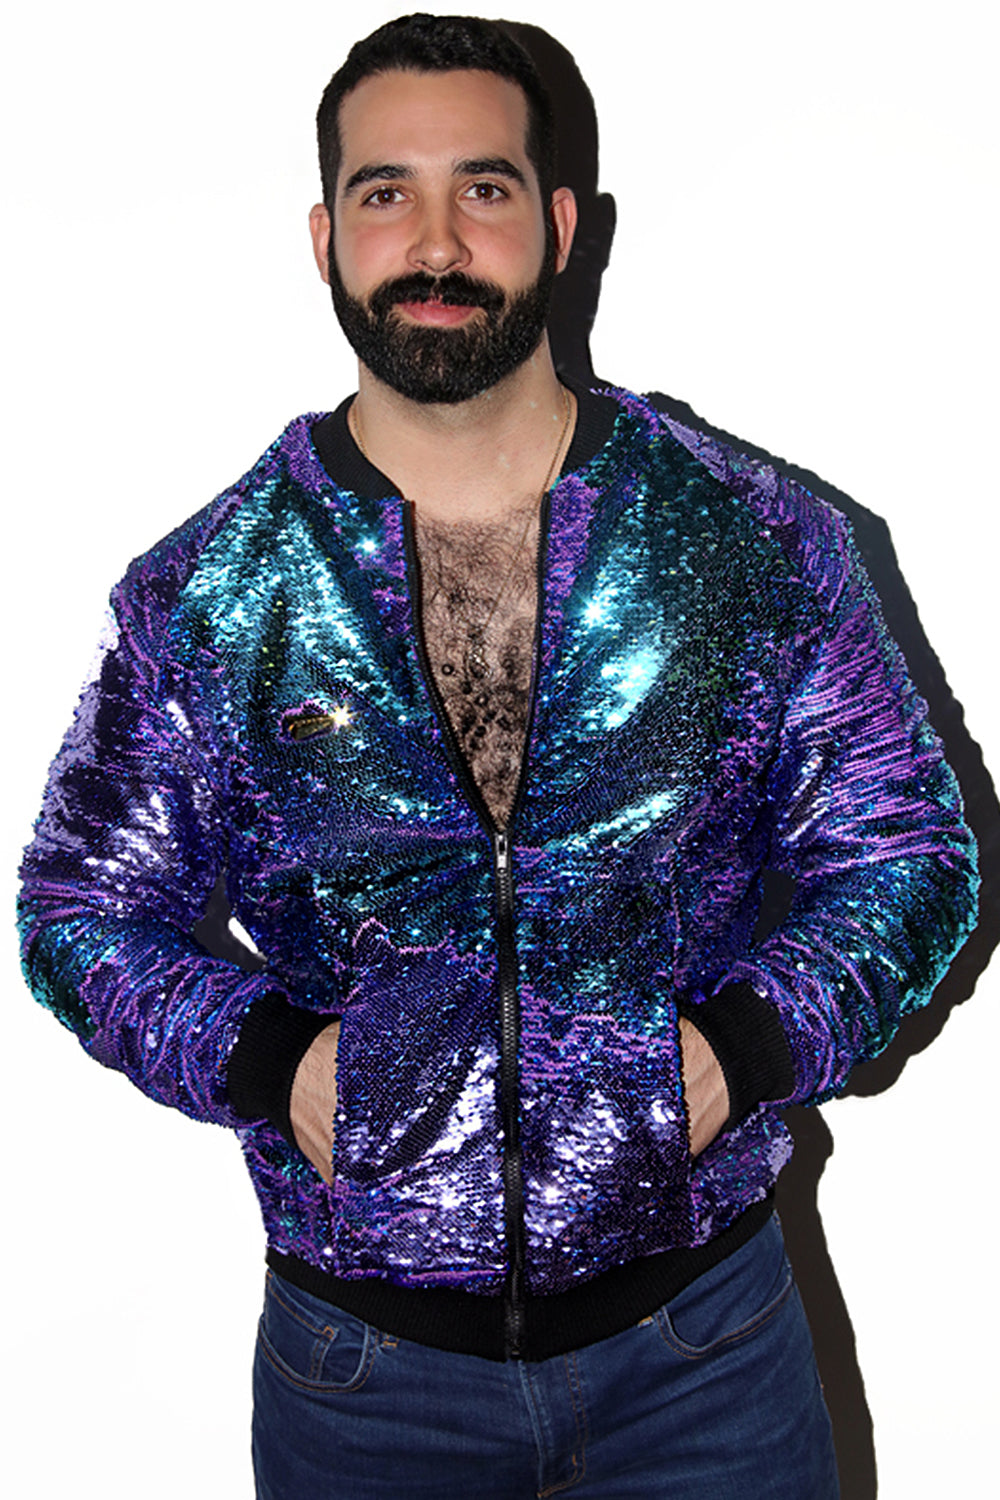 Limited Edition Fantasy Jacket (with Stroke and Change Sequins)